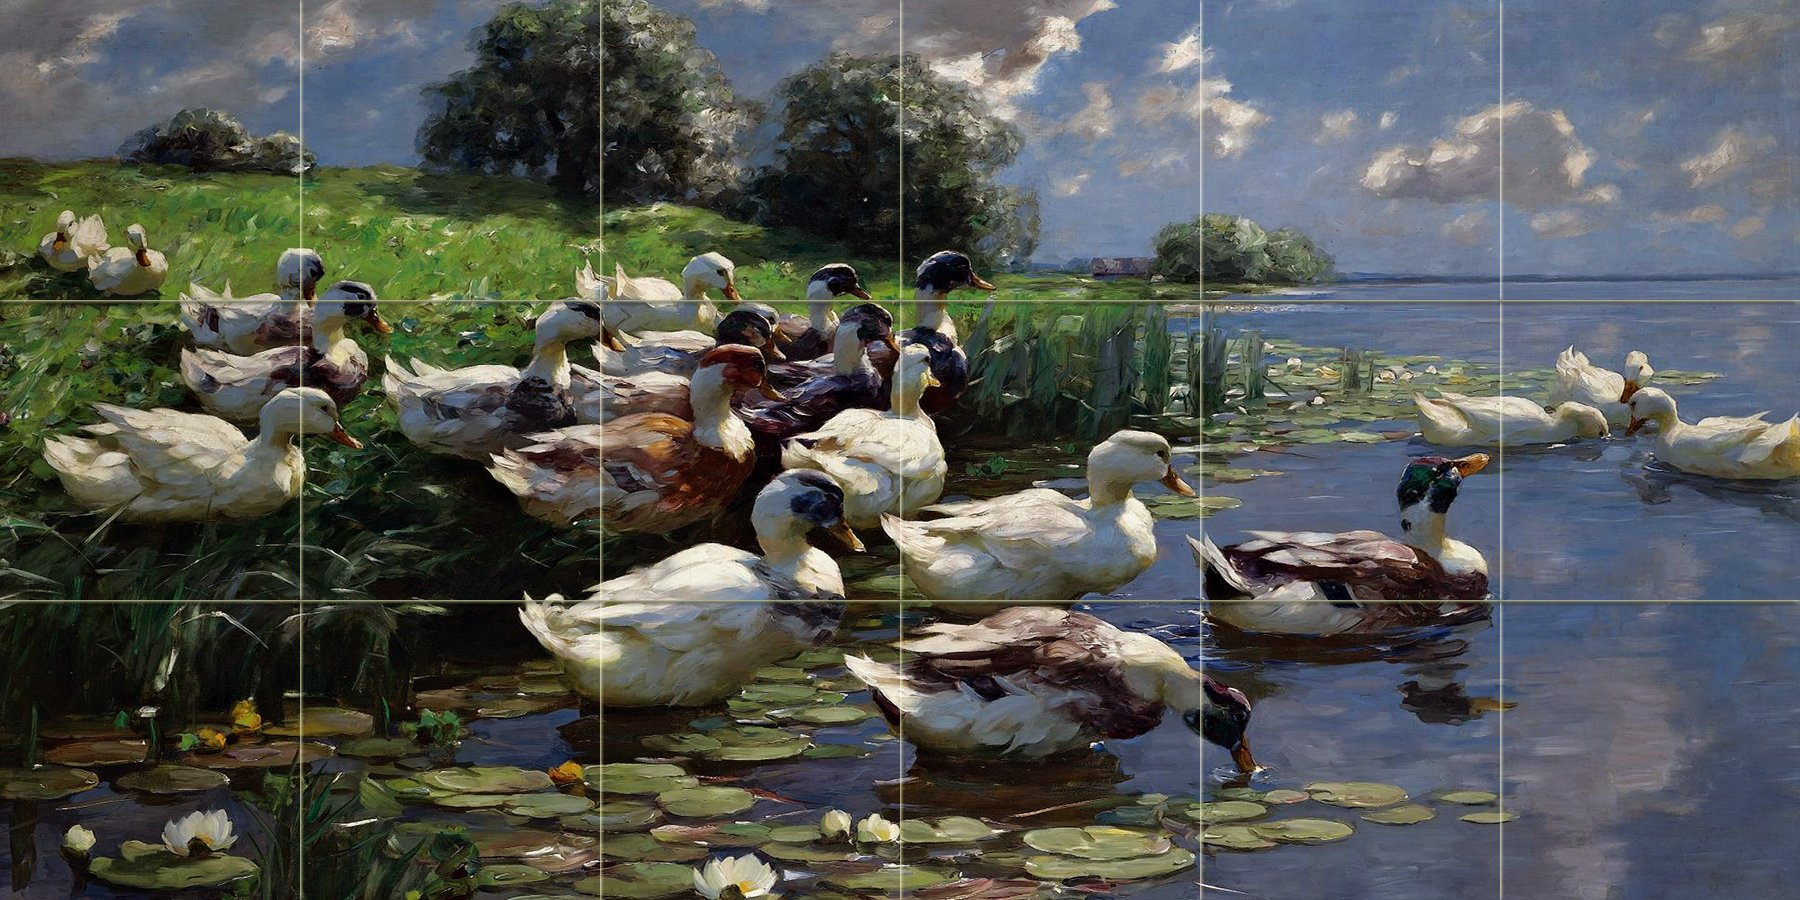 DUCKS ON A LAKE SHORE by Alexander Koester lake river birds landscape Tile Mural Kitchen Bathroom Wall Backsplash Behind Stove Range Sink Splashback 6x3 4.25'' Ceramic, Matte by FlekmanArt